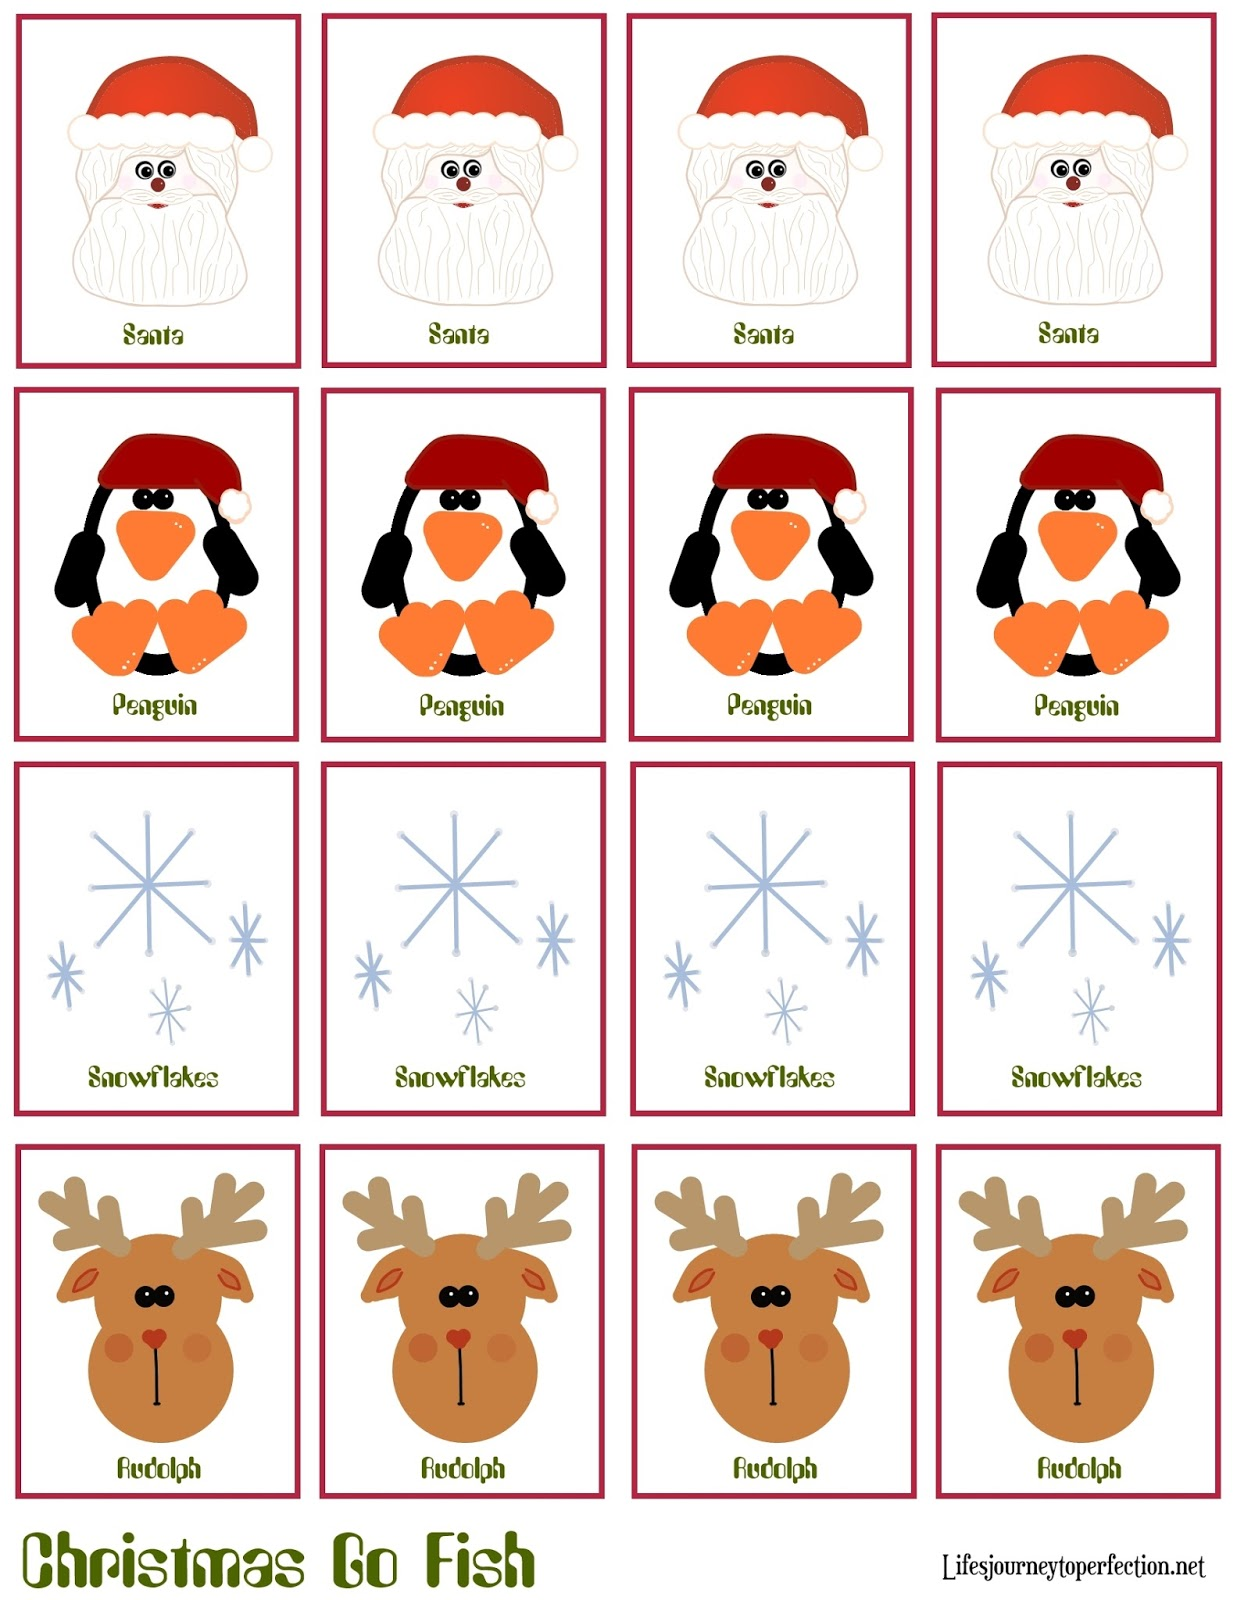 graphic about Printable Go Fish Cards named Lifes Excursion Towards Perfection: Xmas Craft: Xmas \